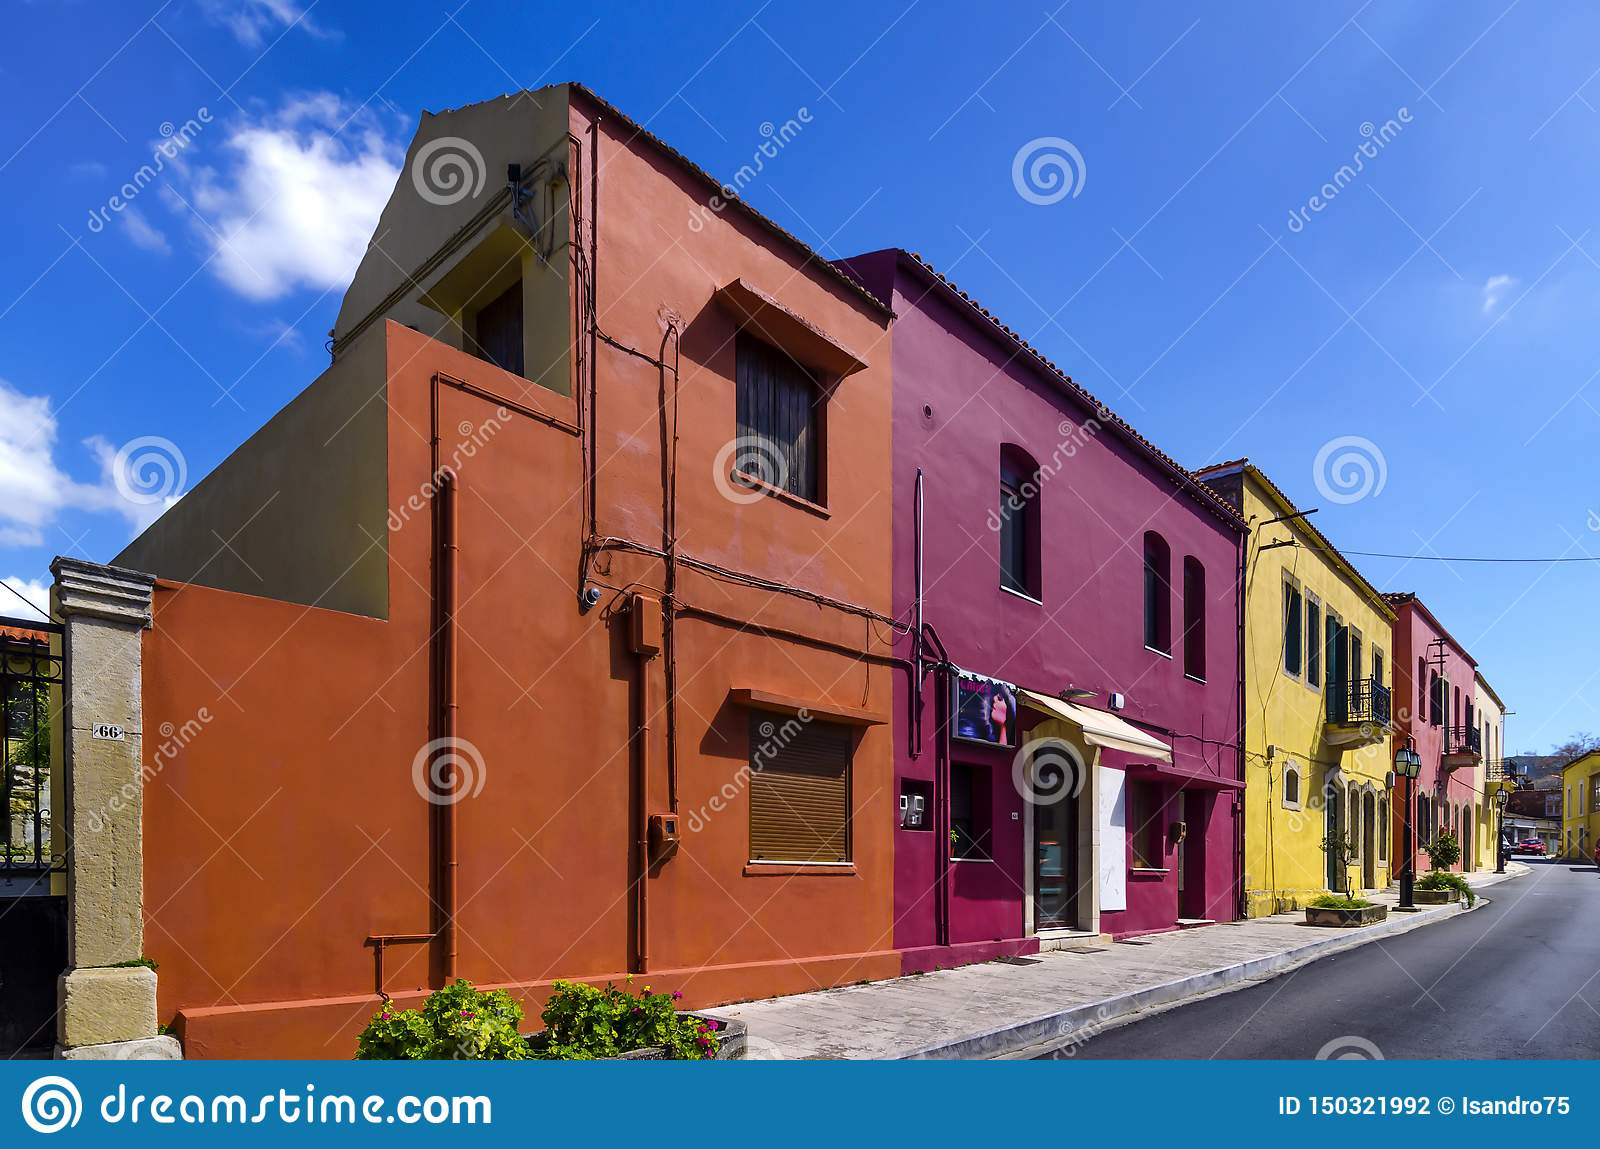 Colorful old traditional houses in Archanes town under the bright sun